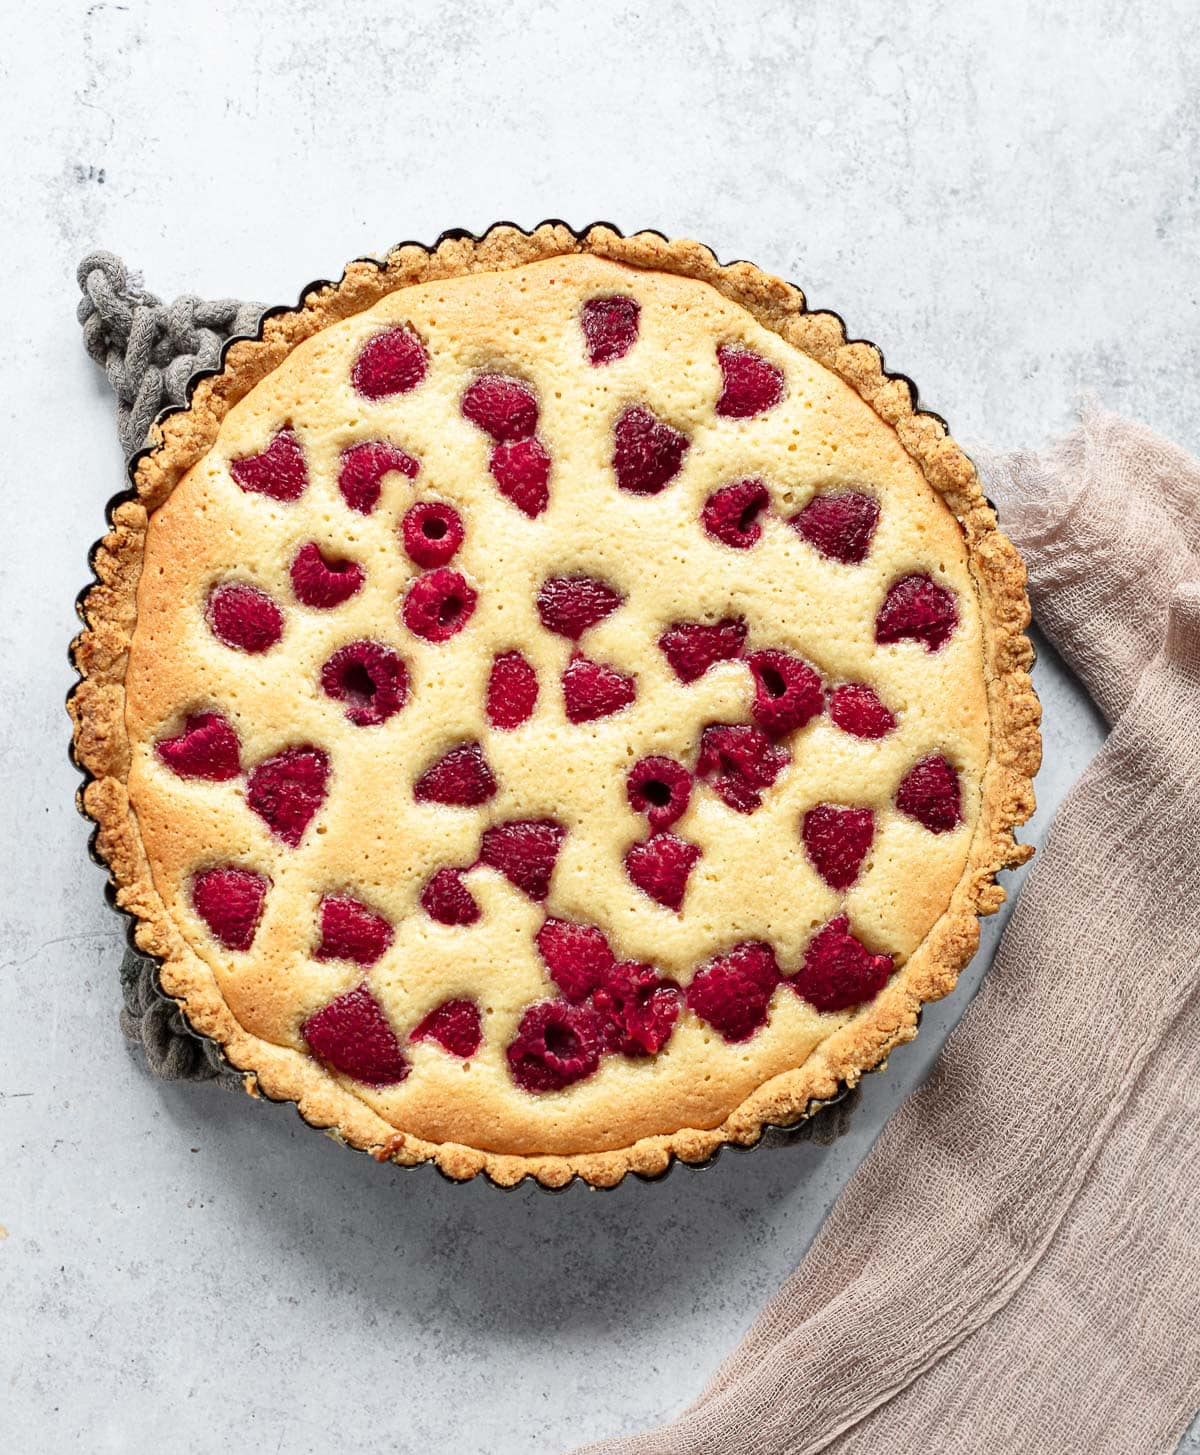 A photo of raspberry almond tart filled with baked frangipane cream and fresh raspberries